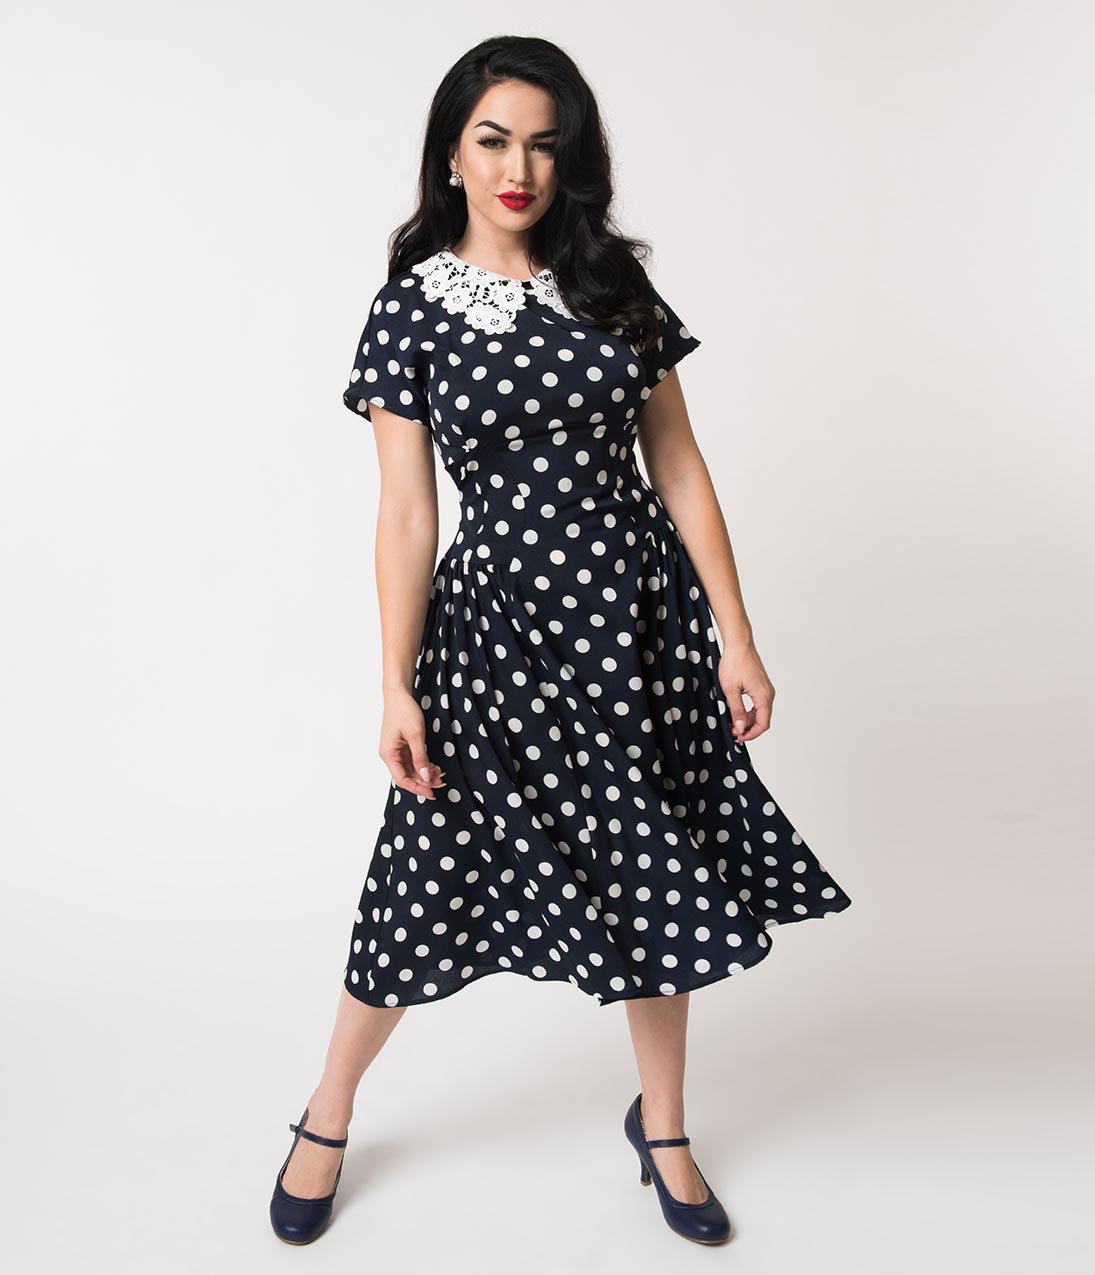 1940s Dresses | 40s Dress, Swing Dress Unique Vintage 1940S Navy  White Polka Dot Lace Collar Margie Dress $88.00 AT vintagedancer.com